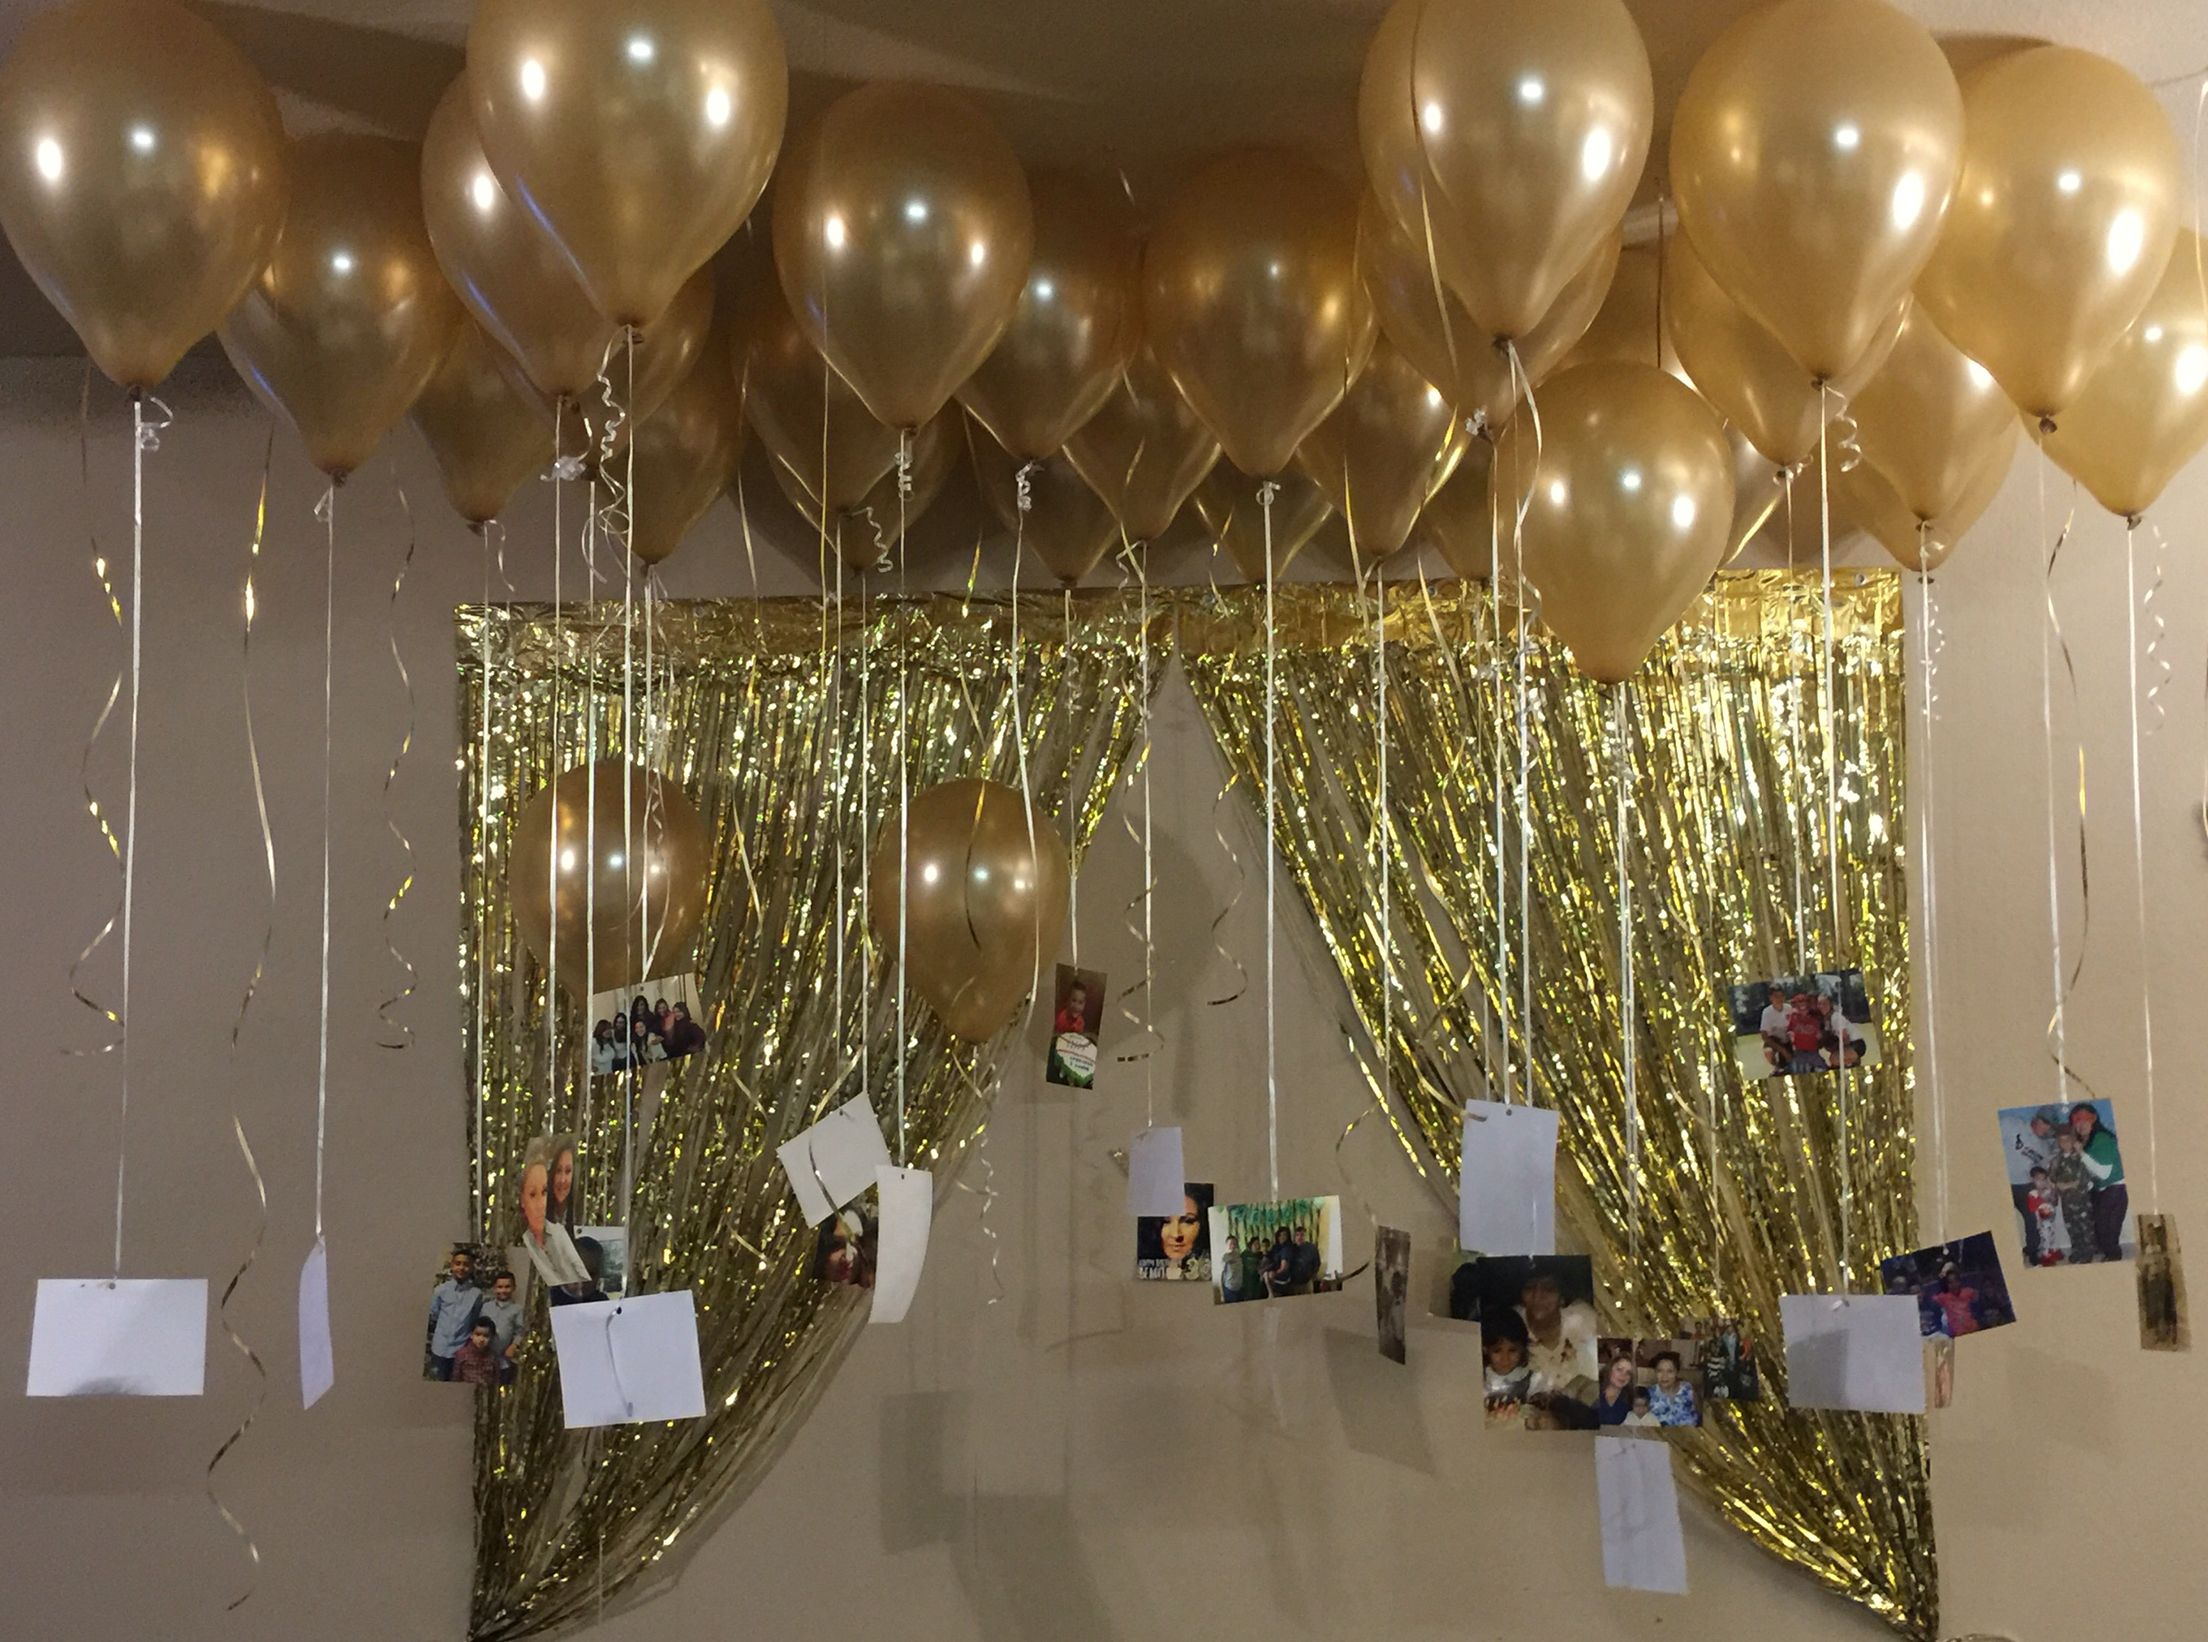 30 Balloons With 30 Growing Up Memories Photos Surprise Birthday